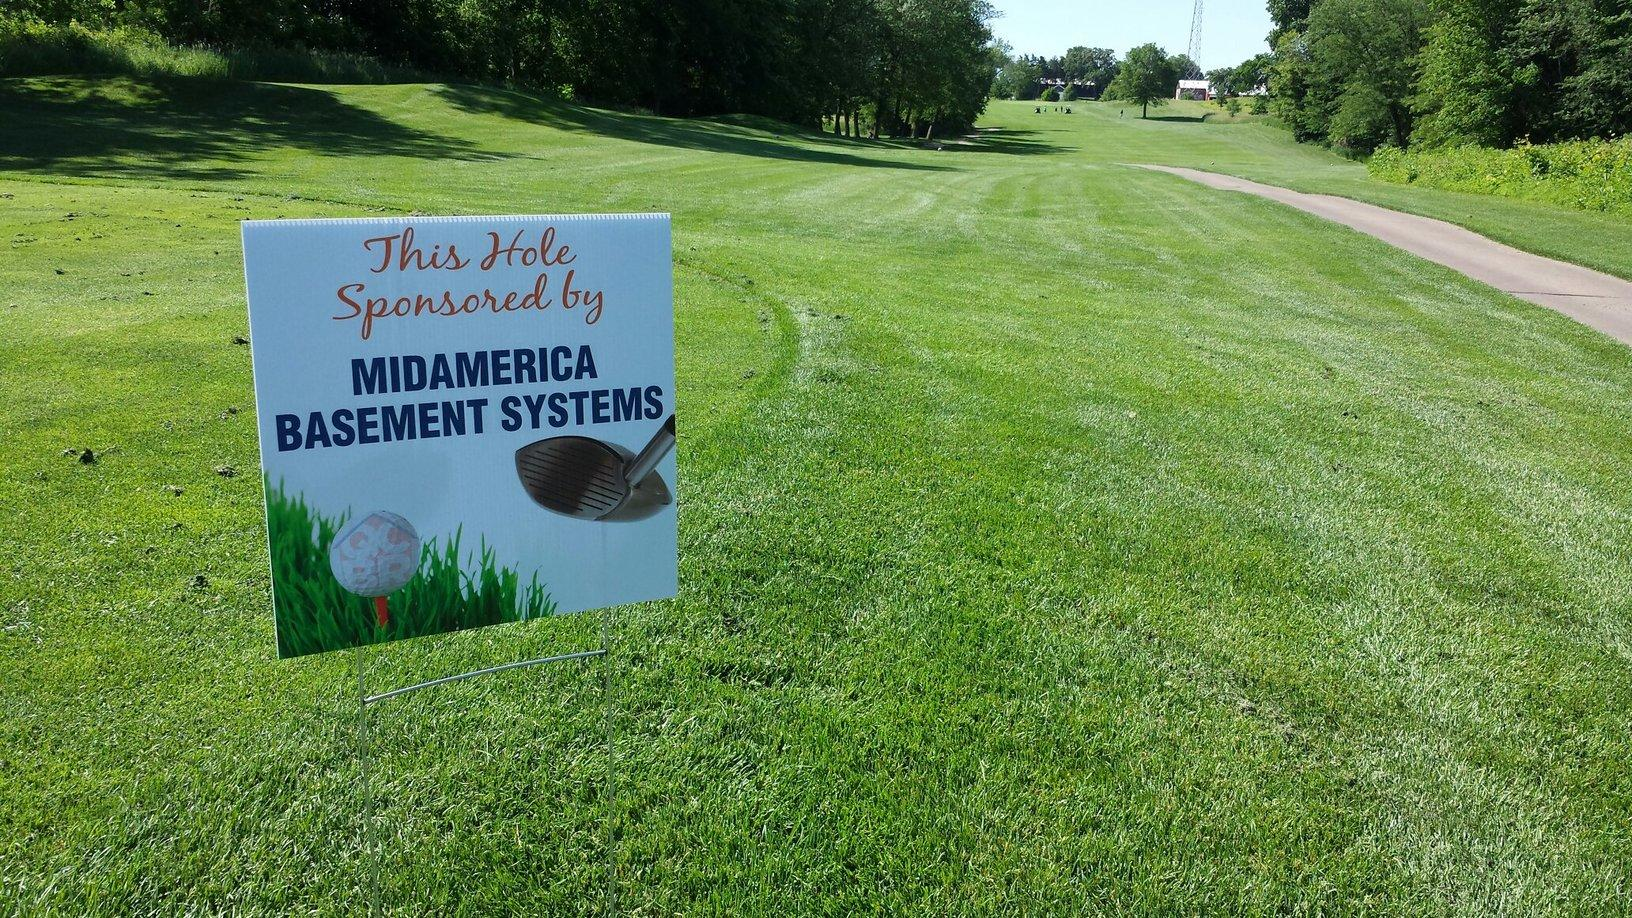 MidAmerica Basement Systems sponsored the 7th Hole at the annual Quad Cities Builders & Remodelers golf outing.